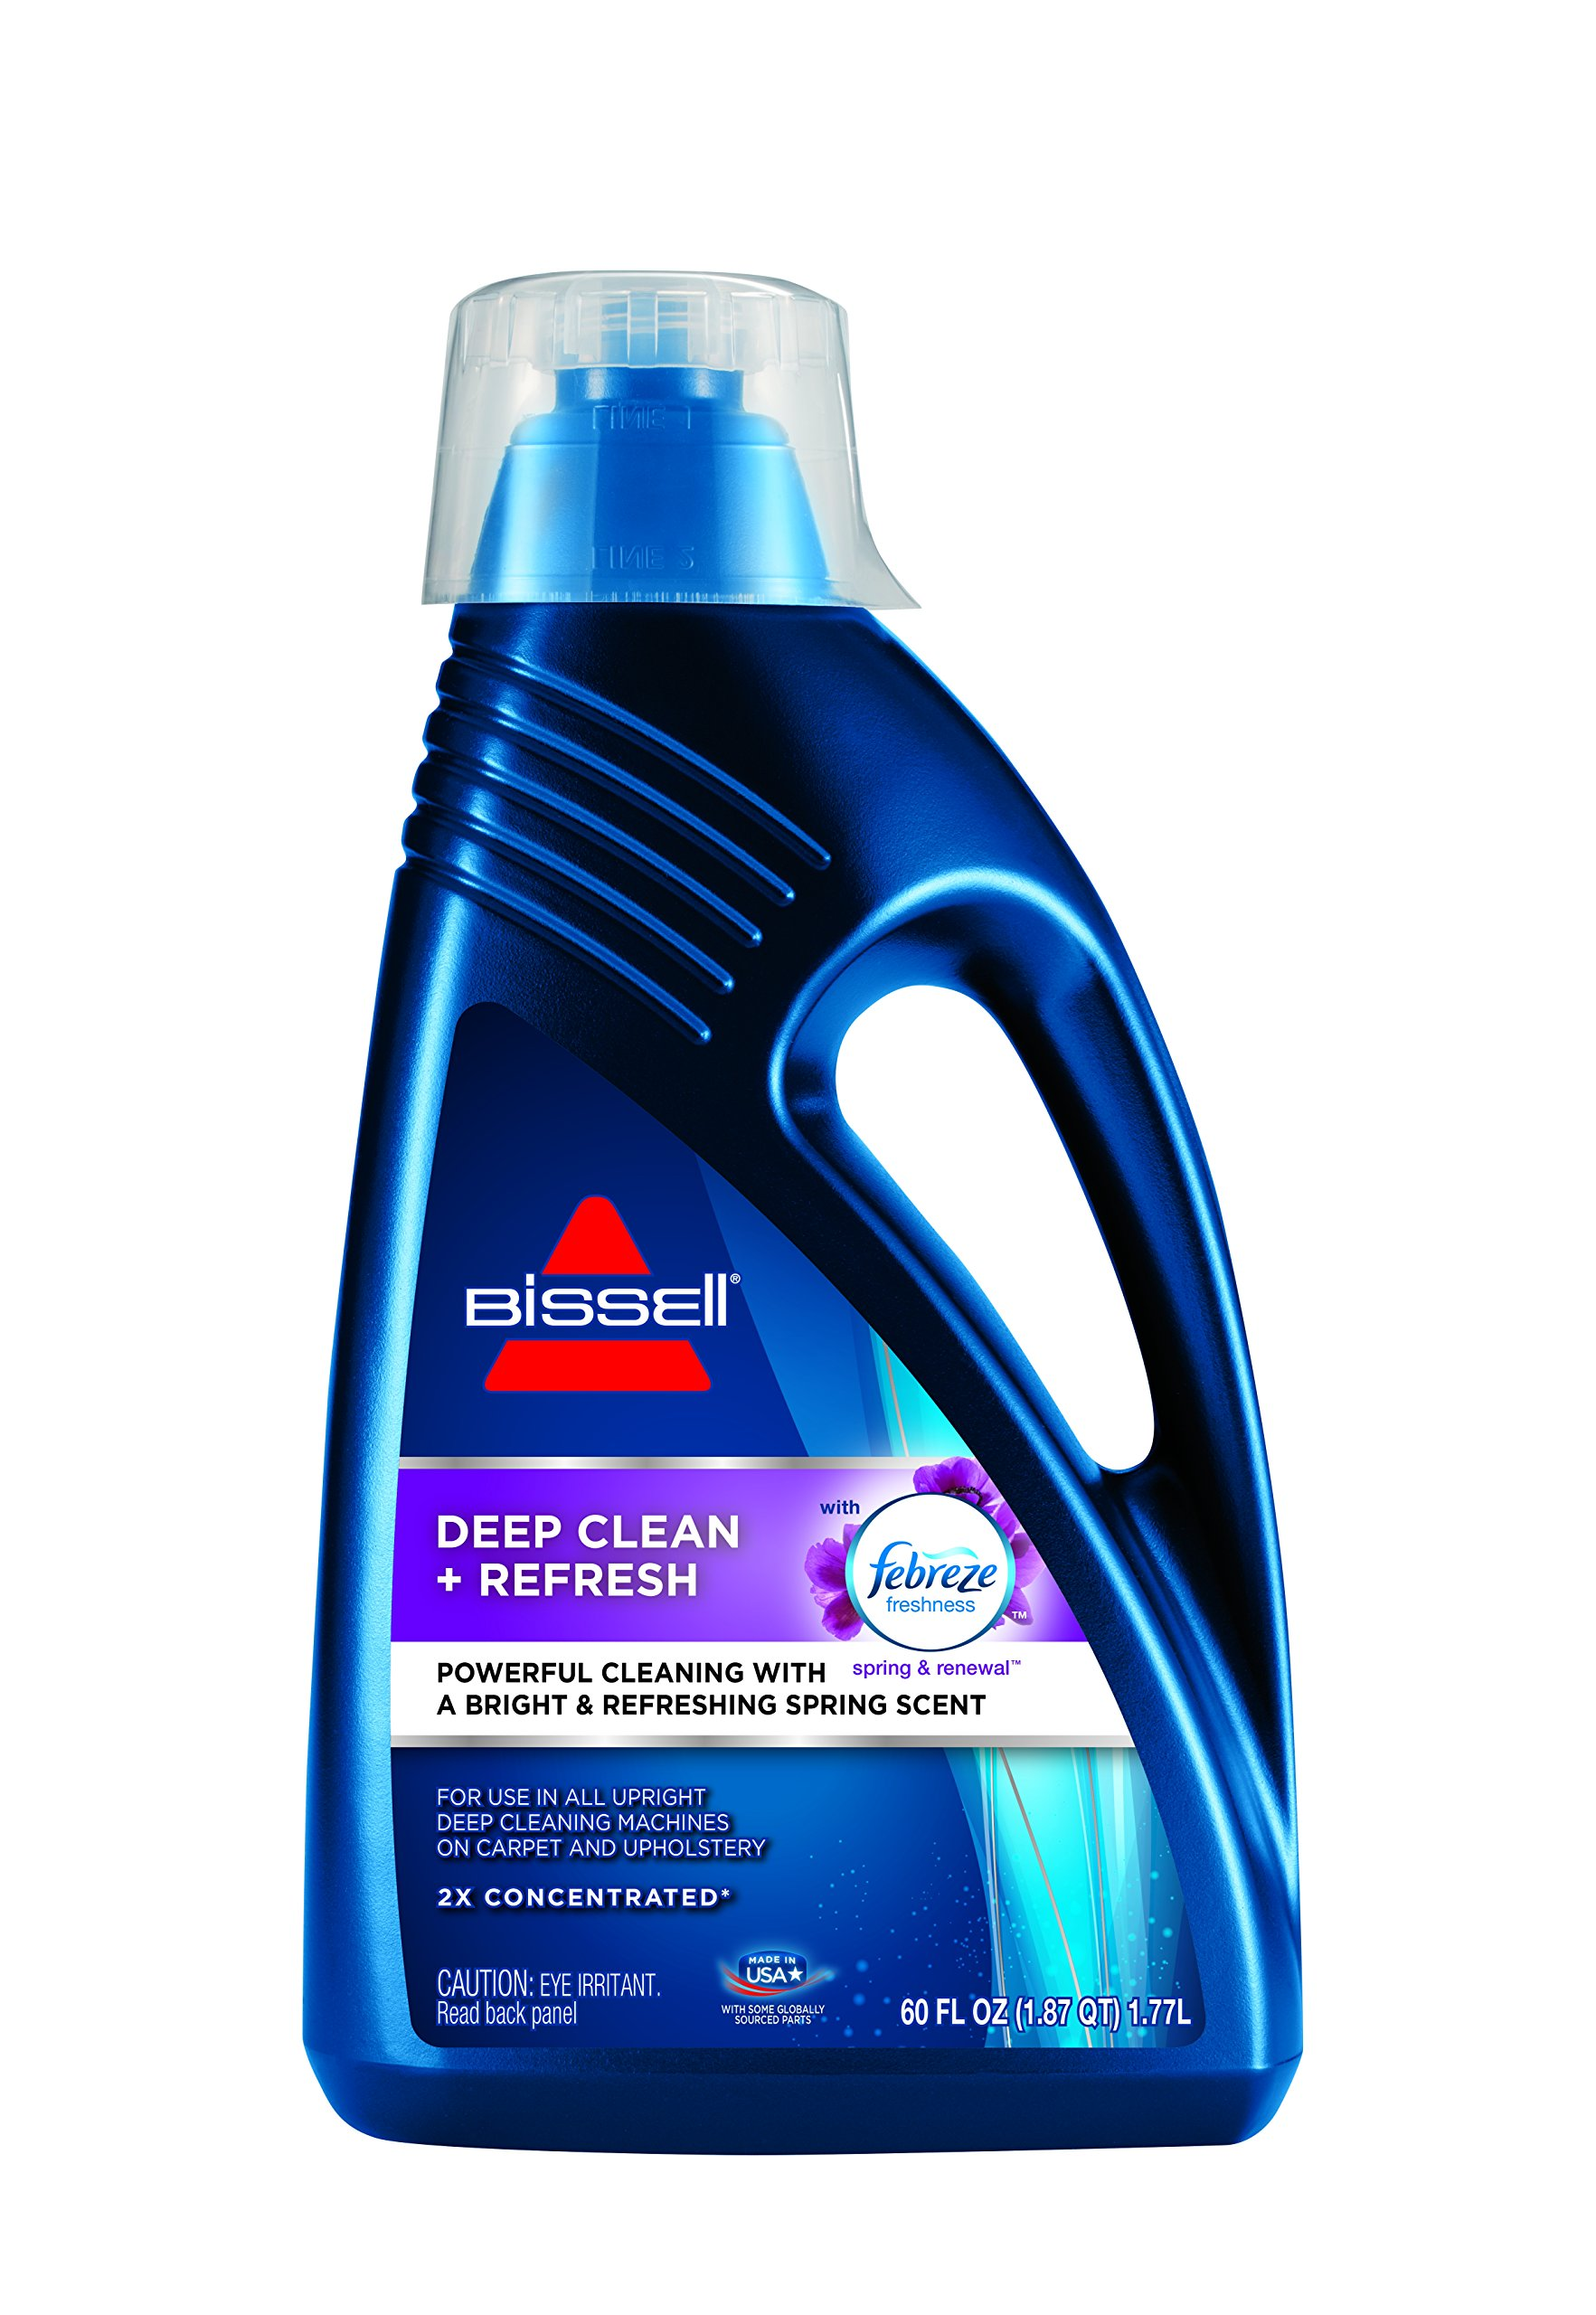 BISSELL DeepClean + Refresh with Febreze Freshness Spring & Renewal Formula, 1052A, 60 ounces by Bissell